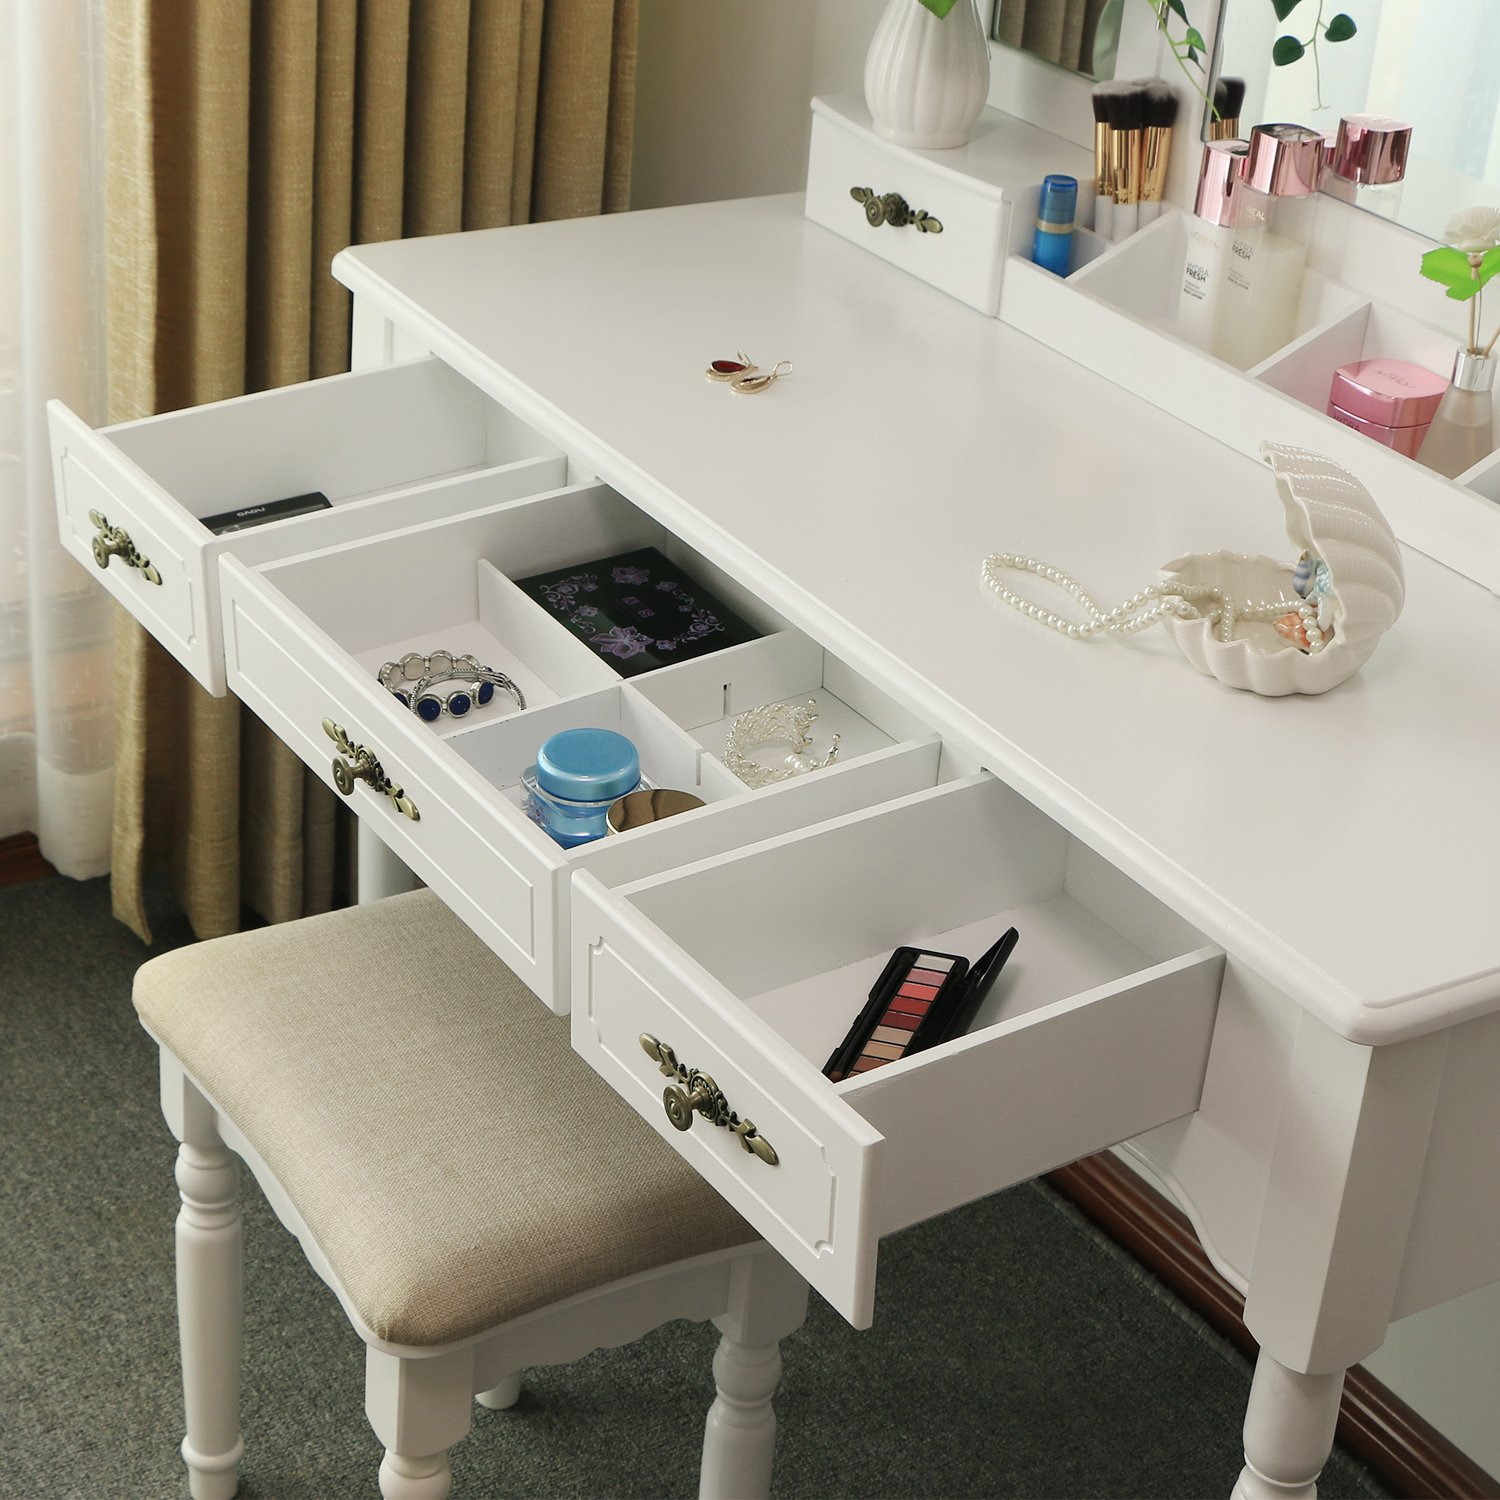 Bewishome vanity makeup table set 5 drawers desk organizer 2 bewishome vanity makeup table set 5 drawers desk organizer 2 dividers tri folding mirror cushioned stool makeup vanity desk dressing table white fst03m watchthetrailerfo